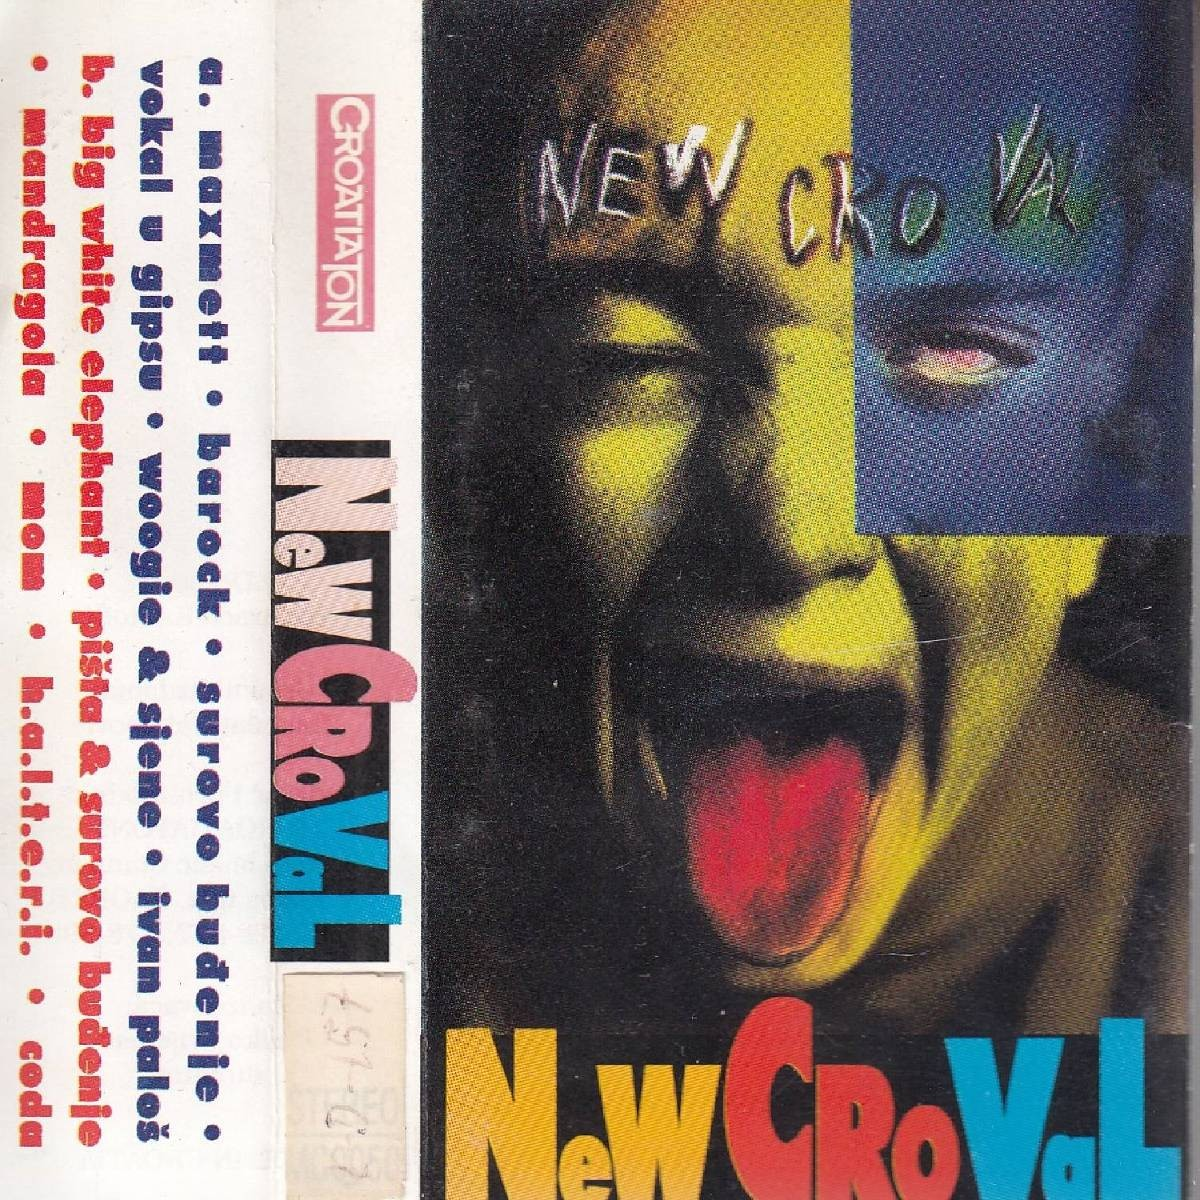 Various Artists - New Cro Val